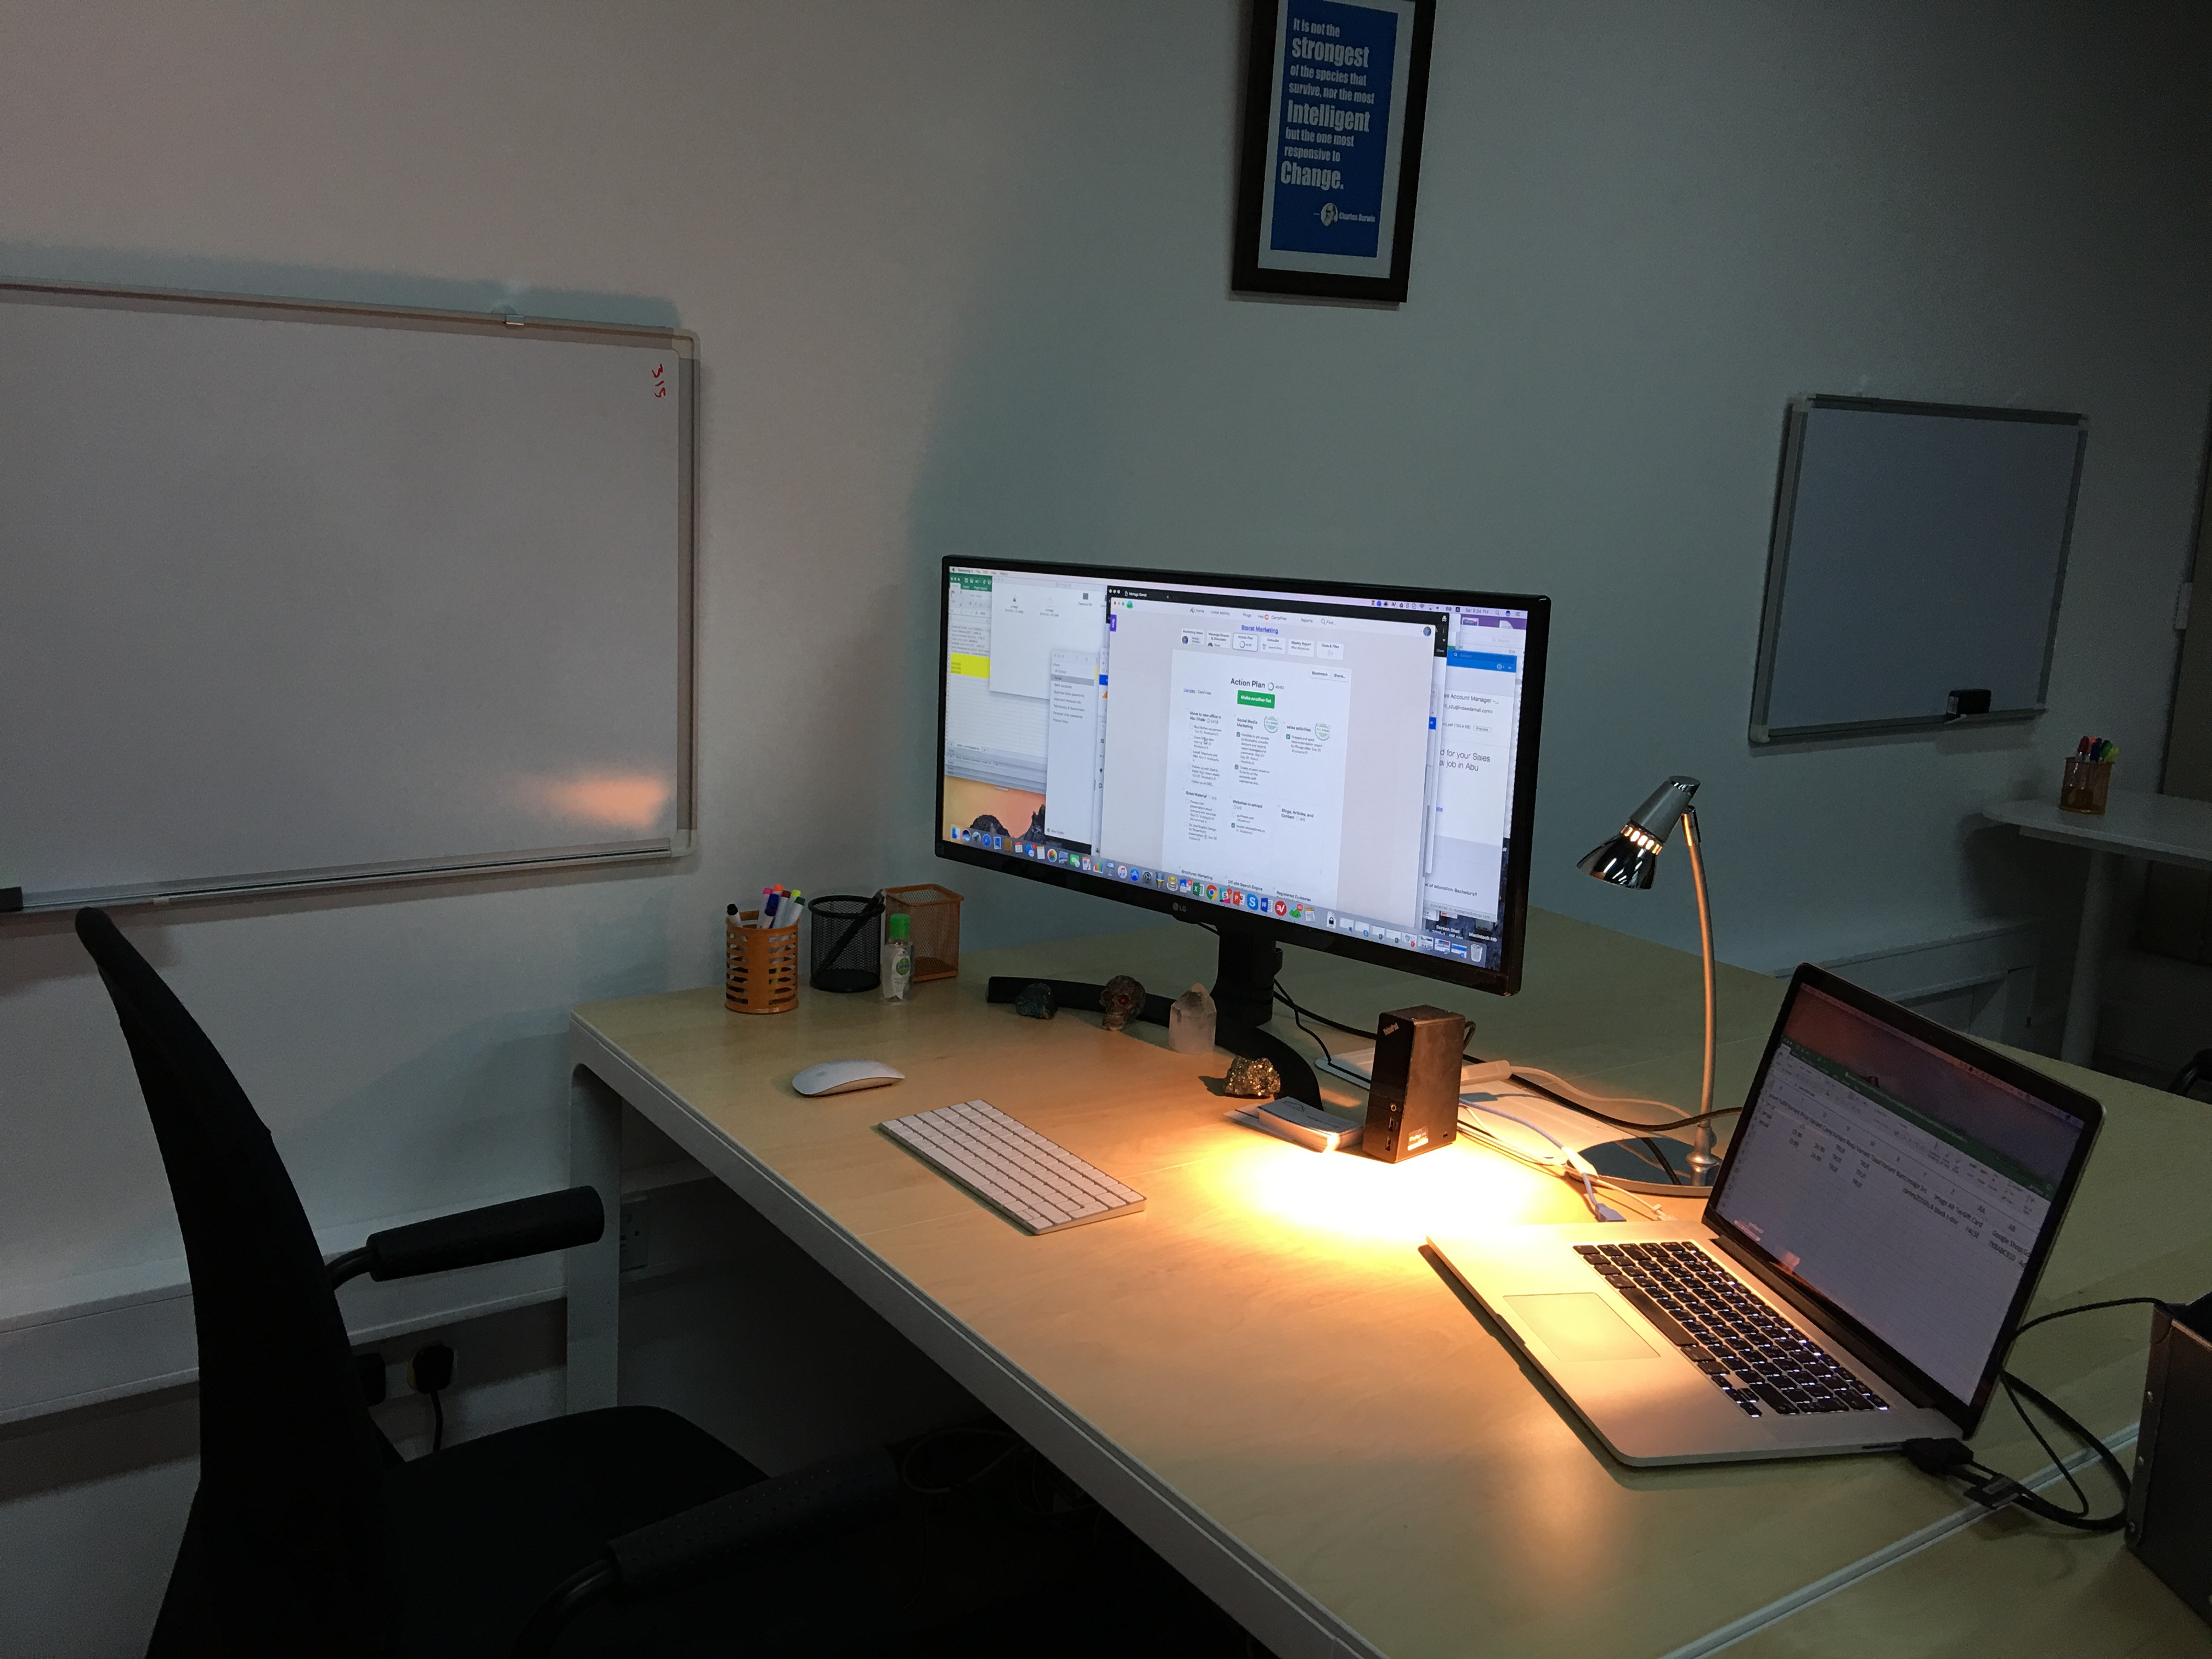 Oryx Cloud HQ - CEO Cubical - I traded a big office for a fresh and open space cubical.